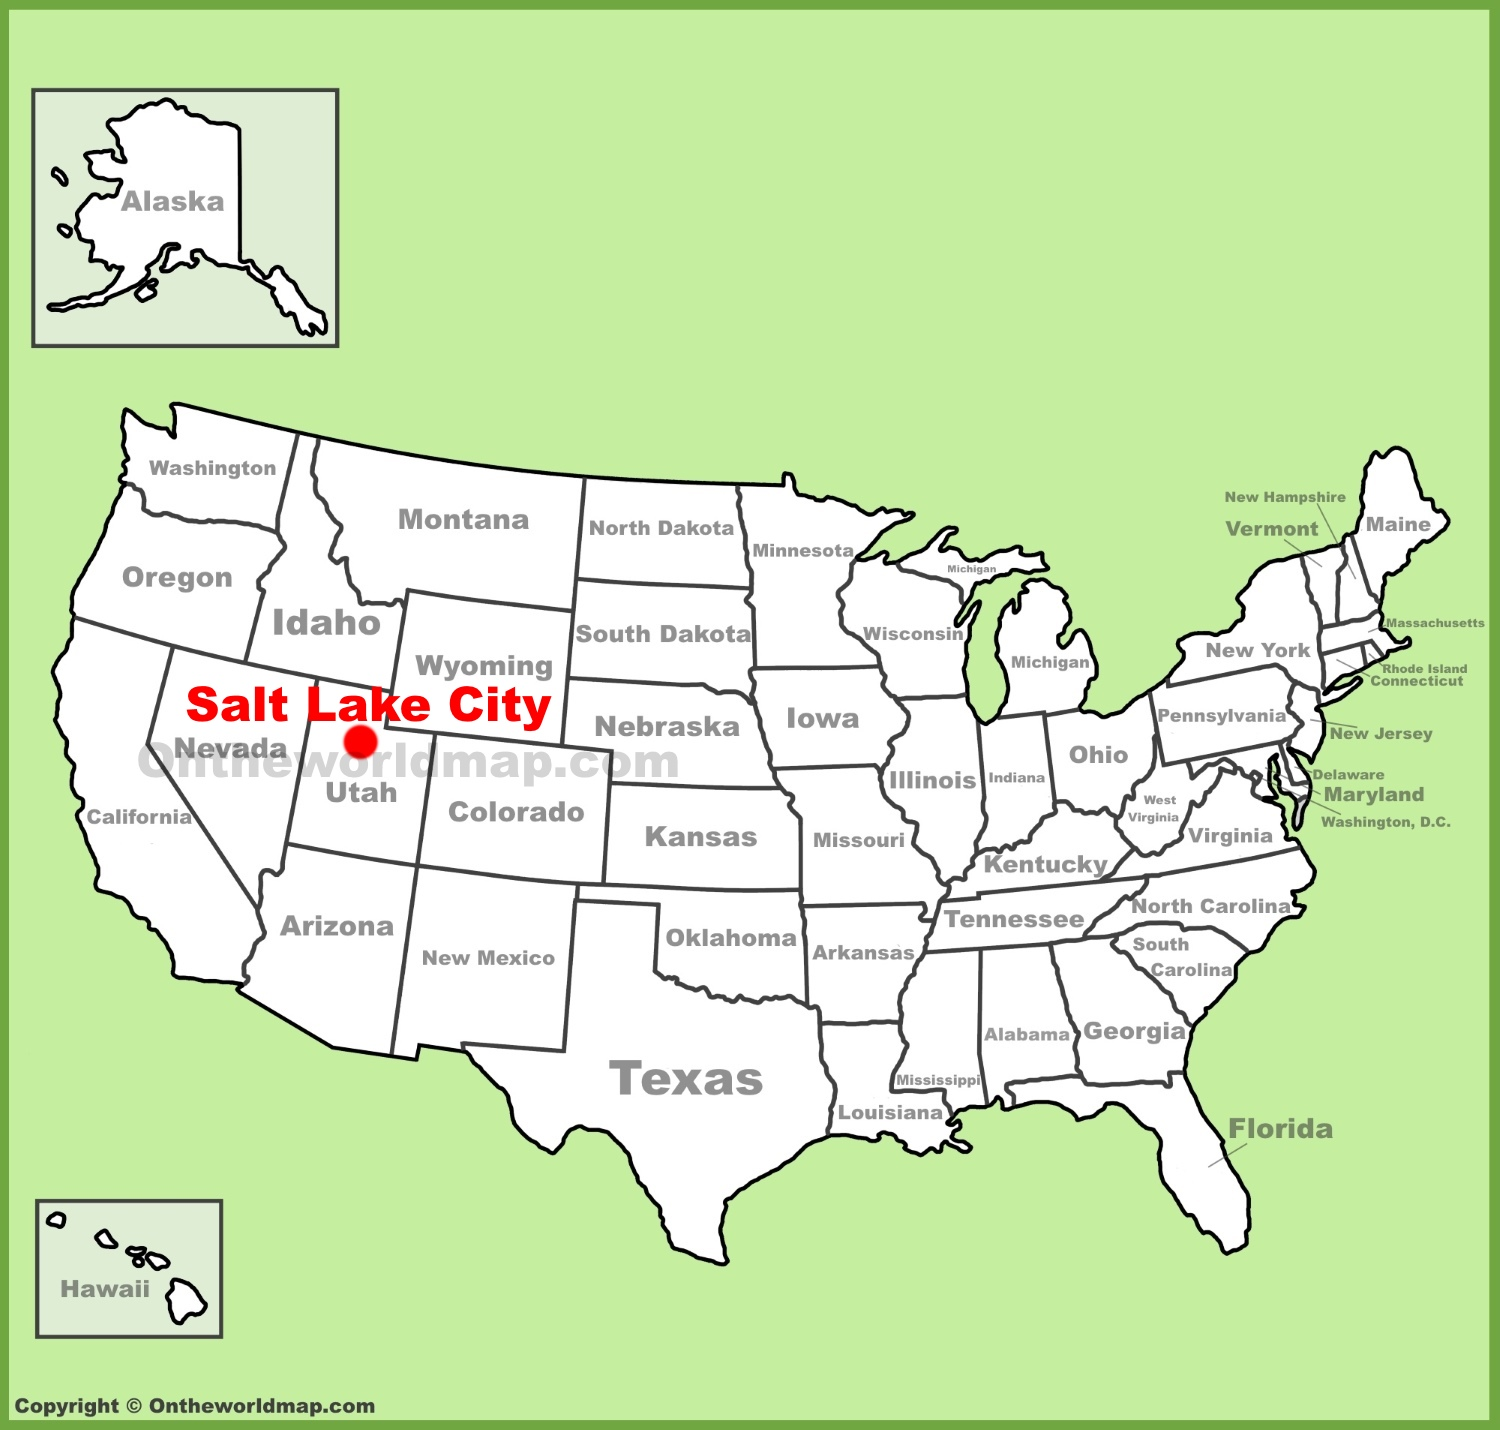 Salt Lake City Utah Map Salt Lake City Maps | Utah, U.S. | Maps of Salt Lake City